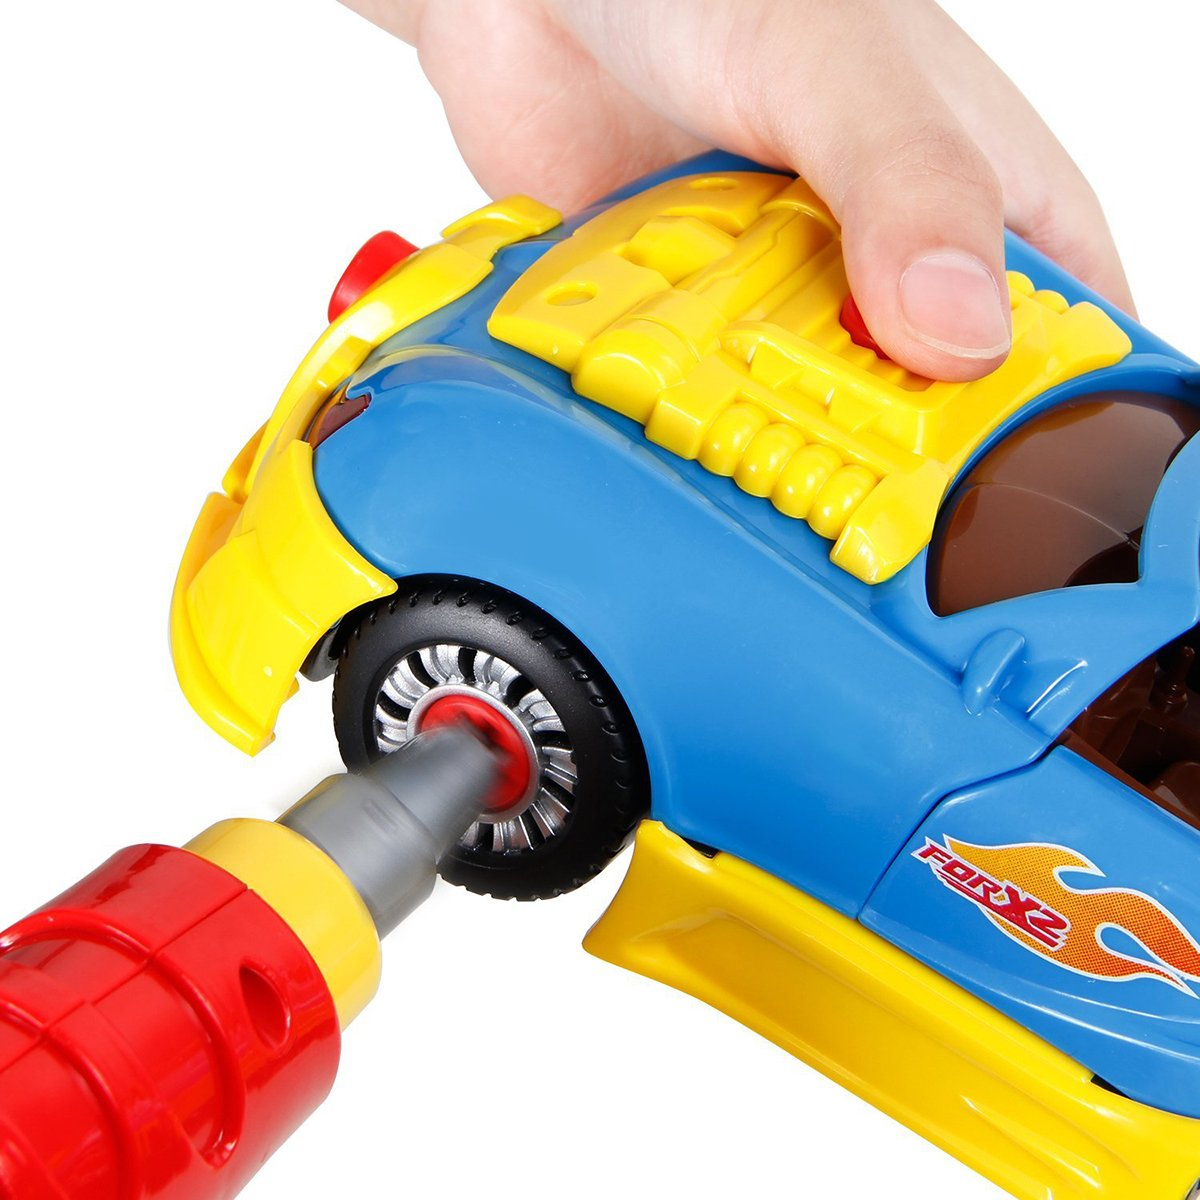 CoolToys Custom Take-A-Part Car Playset – Sports Car with Electric Play Drill and 30 Car Modification Pieces – Motion Activated Lights and Sounds by CoolToys (Image #4)